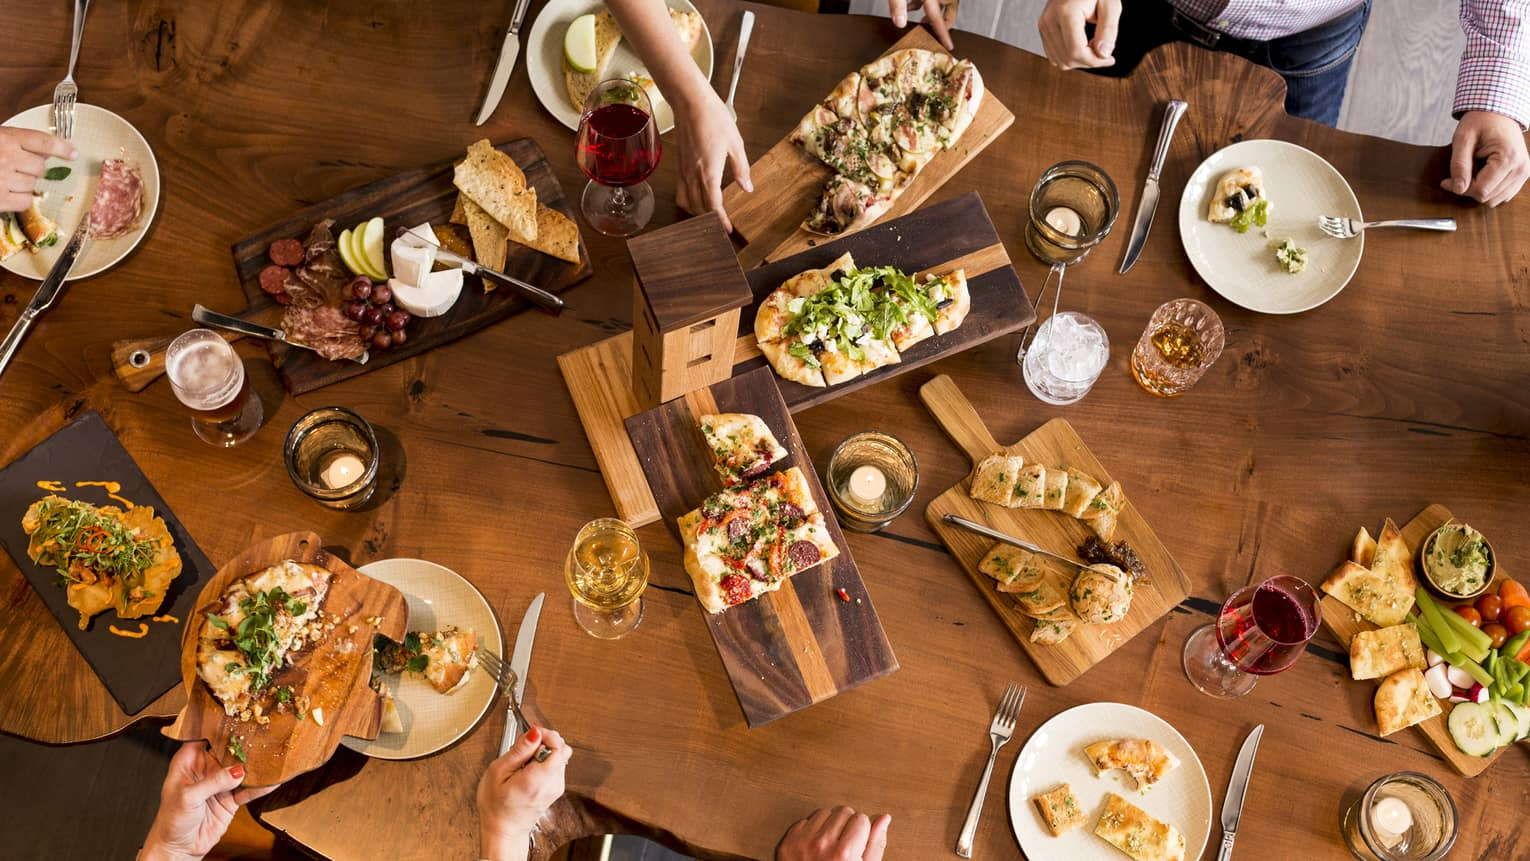 Aerial view of people dining around rustic wood table with platters of flatbreads, appetizers